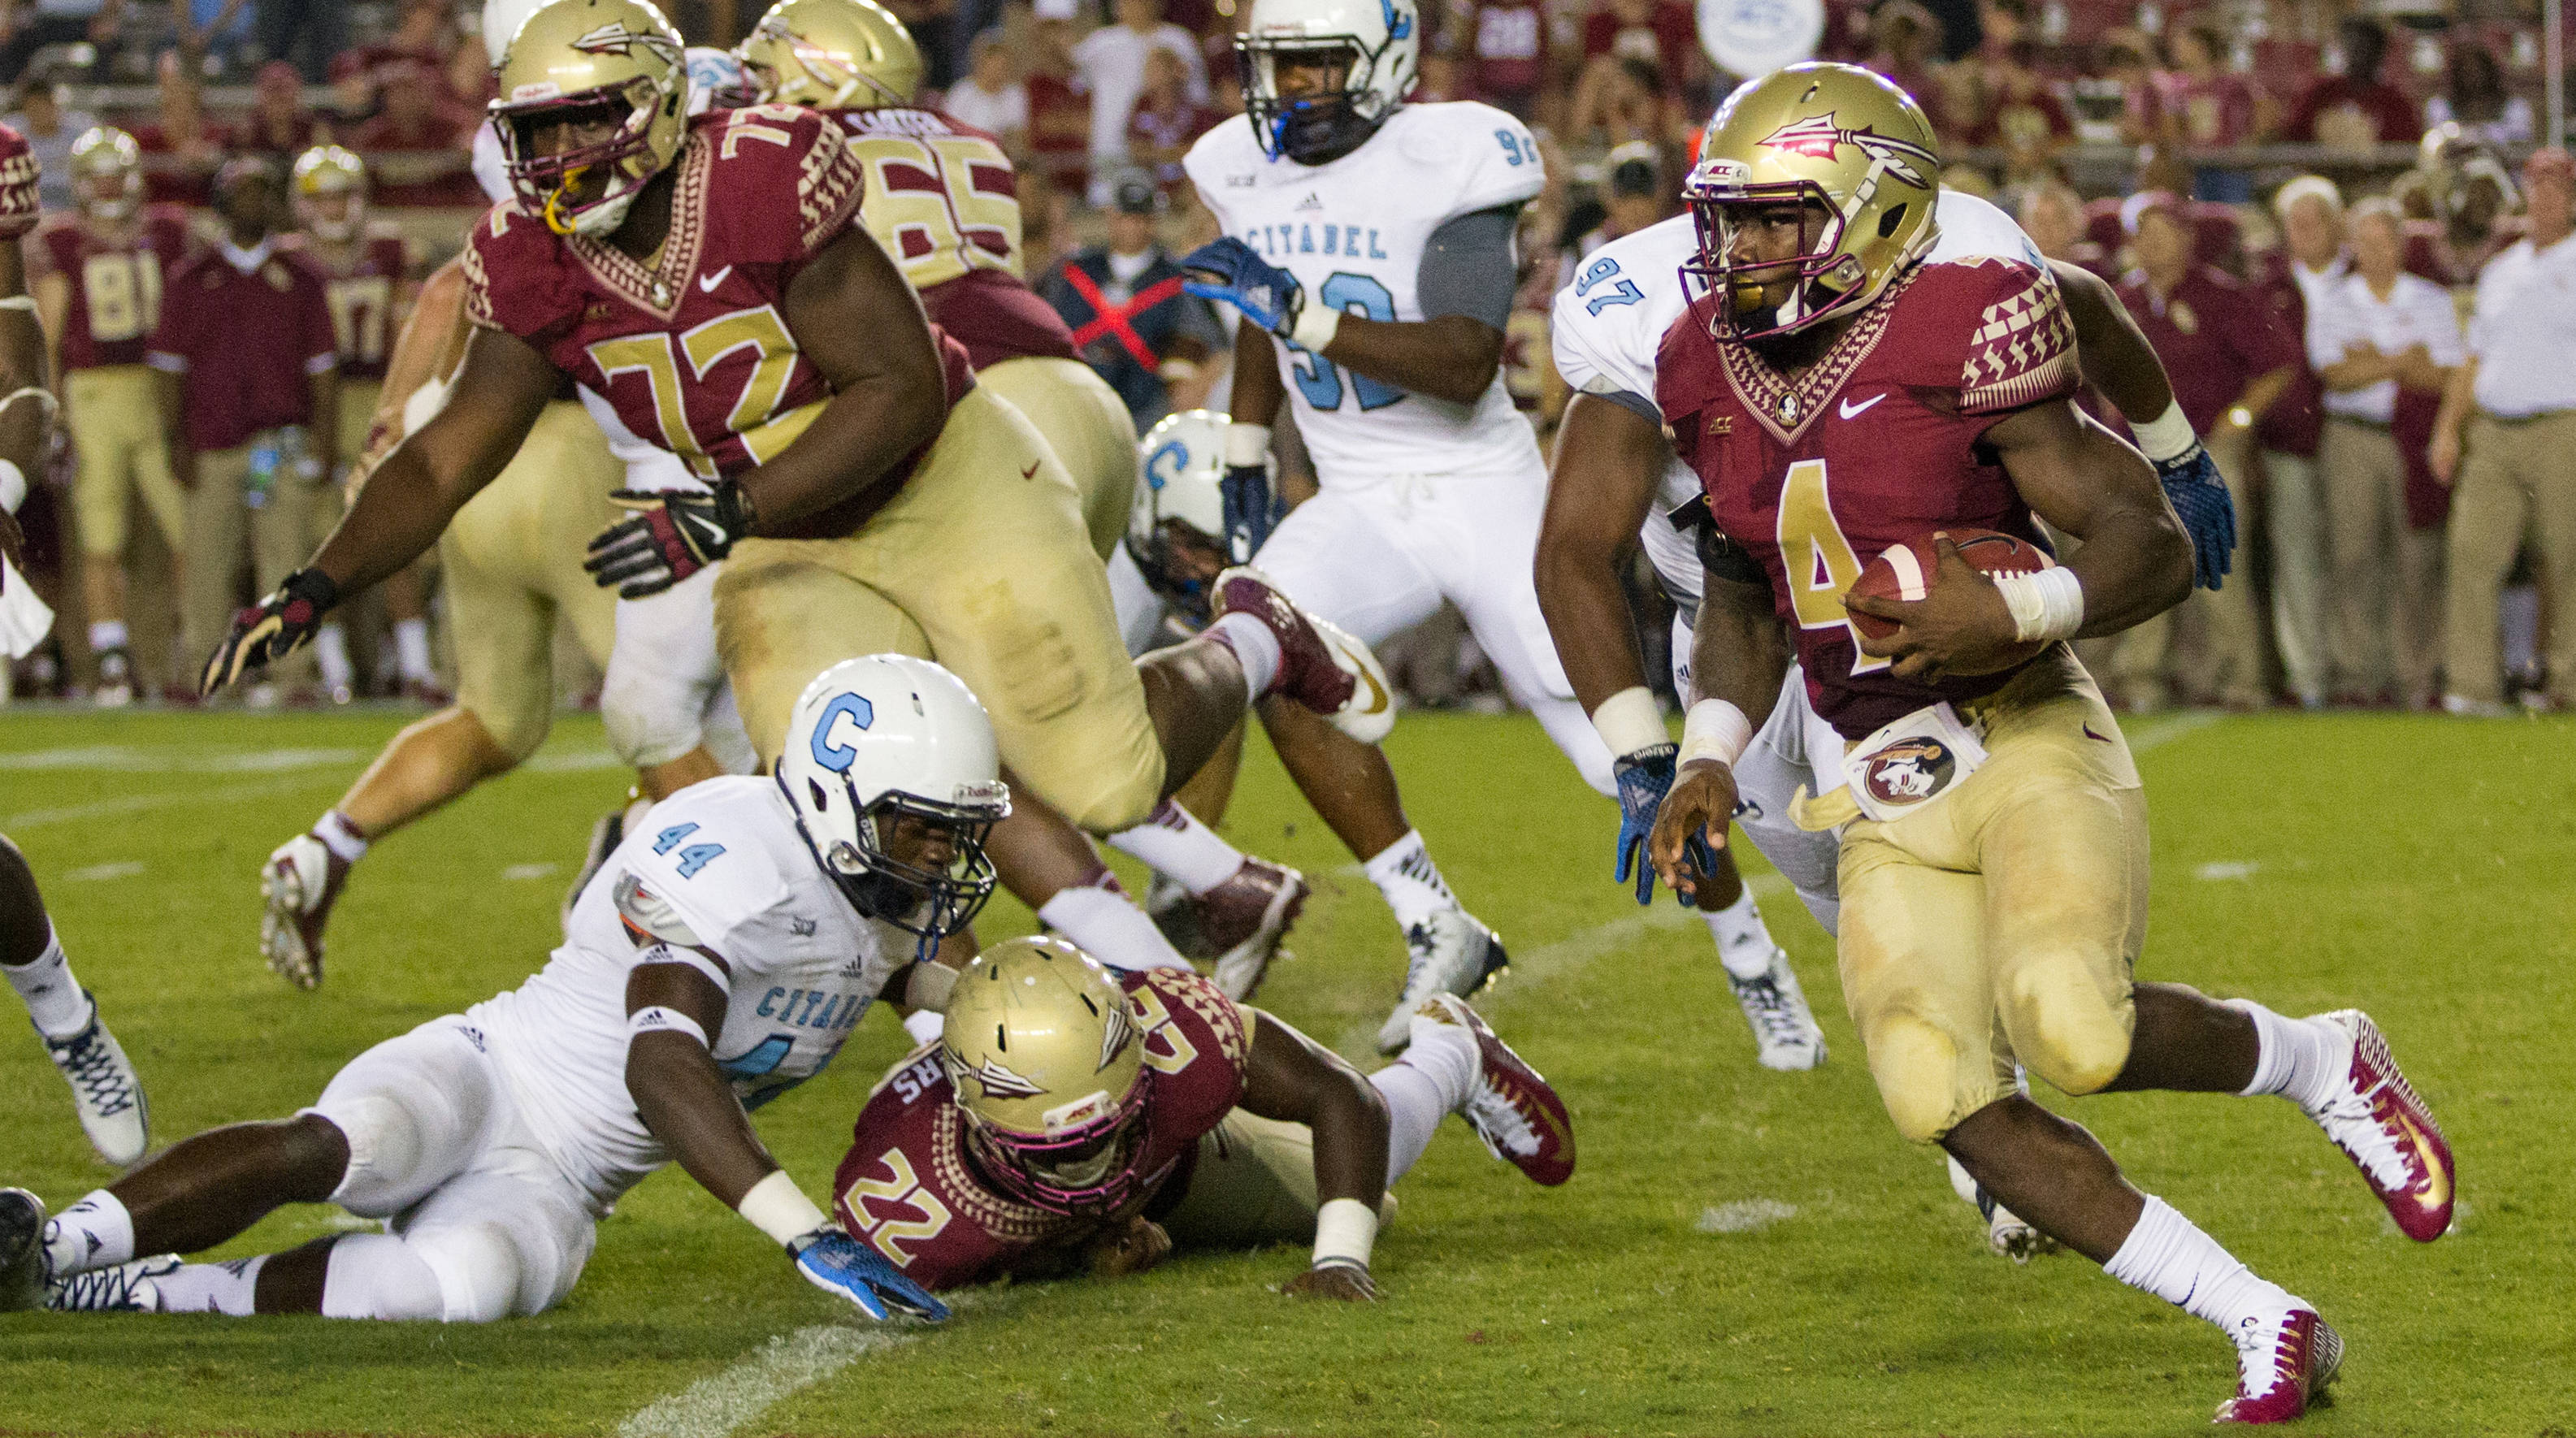 Florida State vs. The Citadel